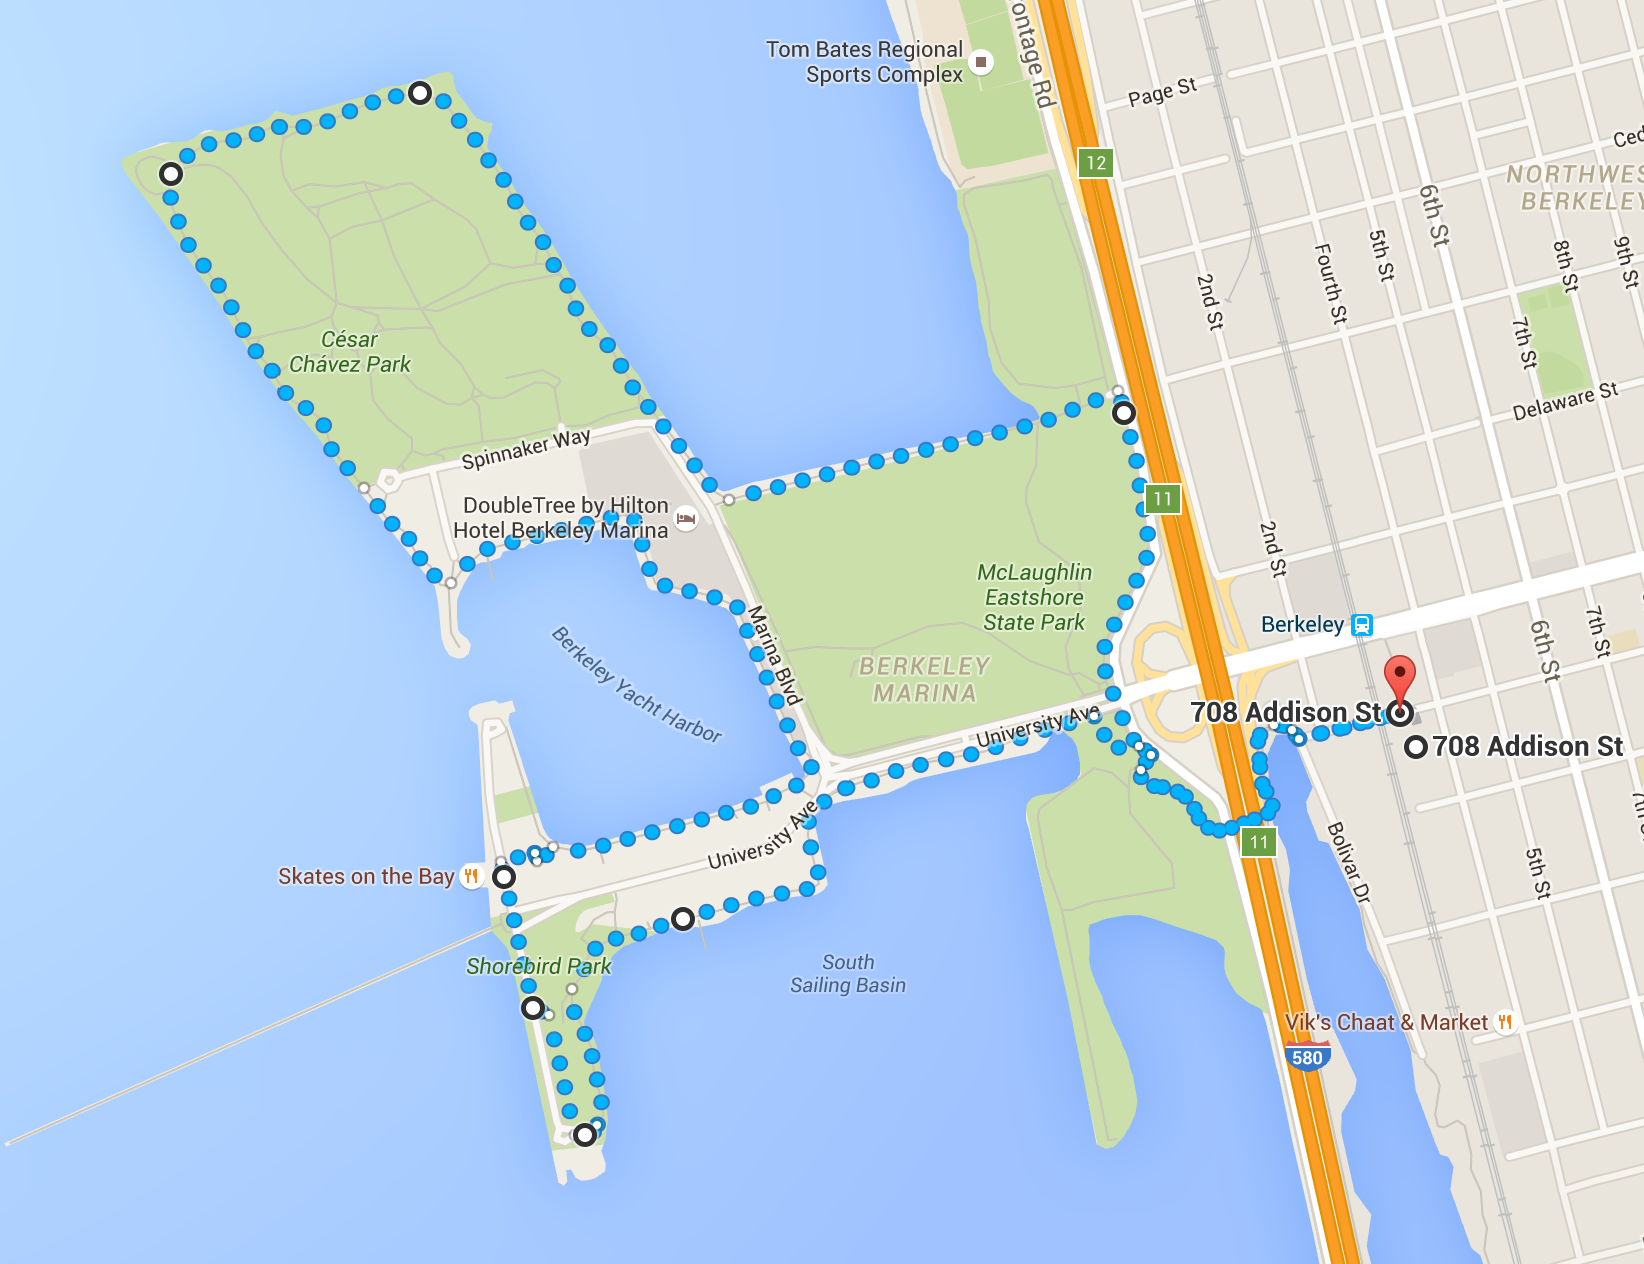 a nice running route through the berkeley marina and cesar chavez park